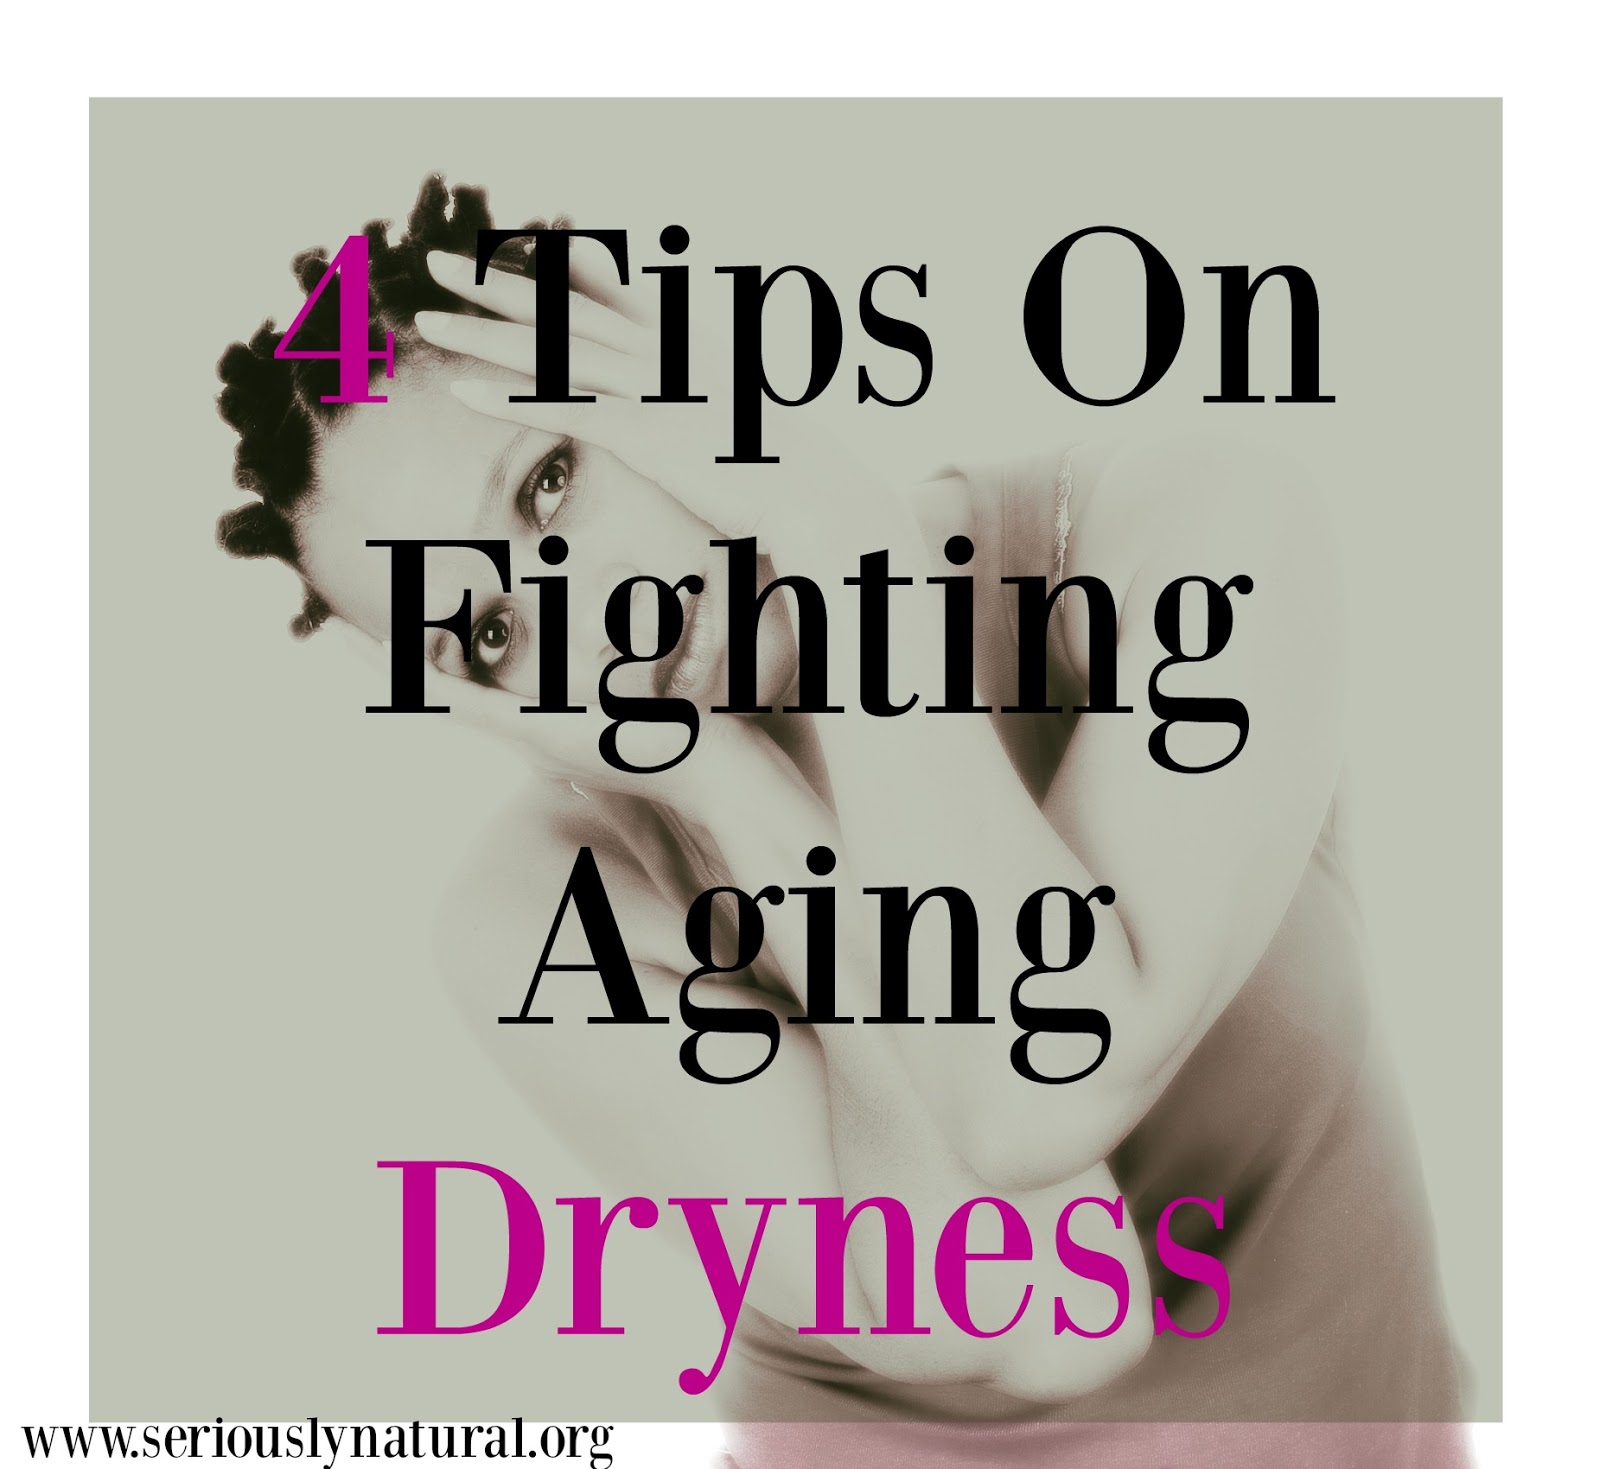 4 Tips On Fighting Aging Dryness